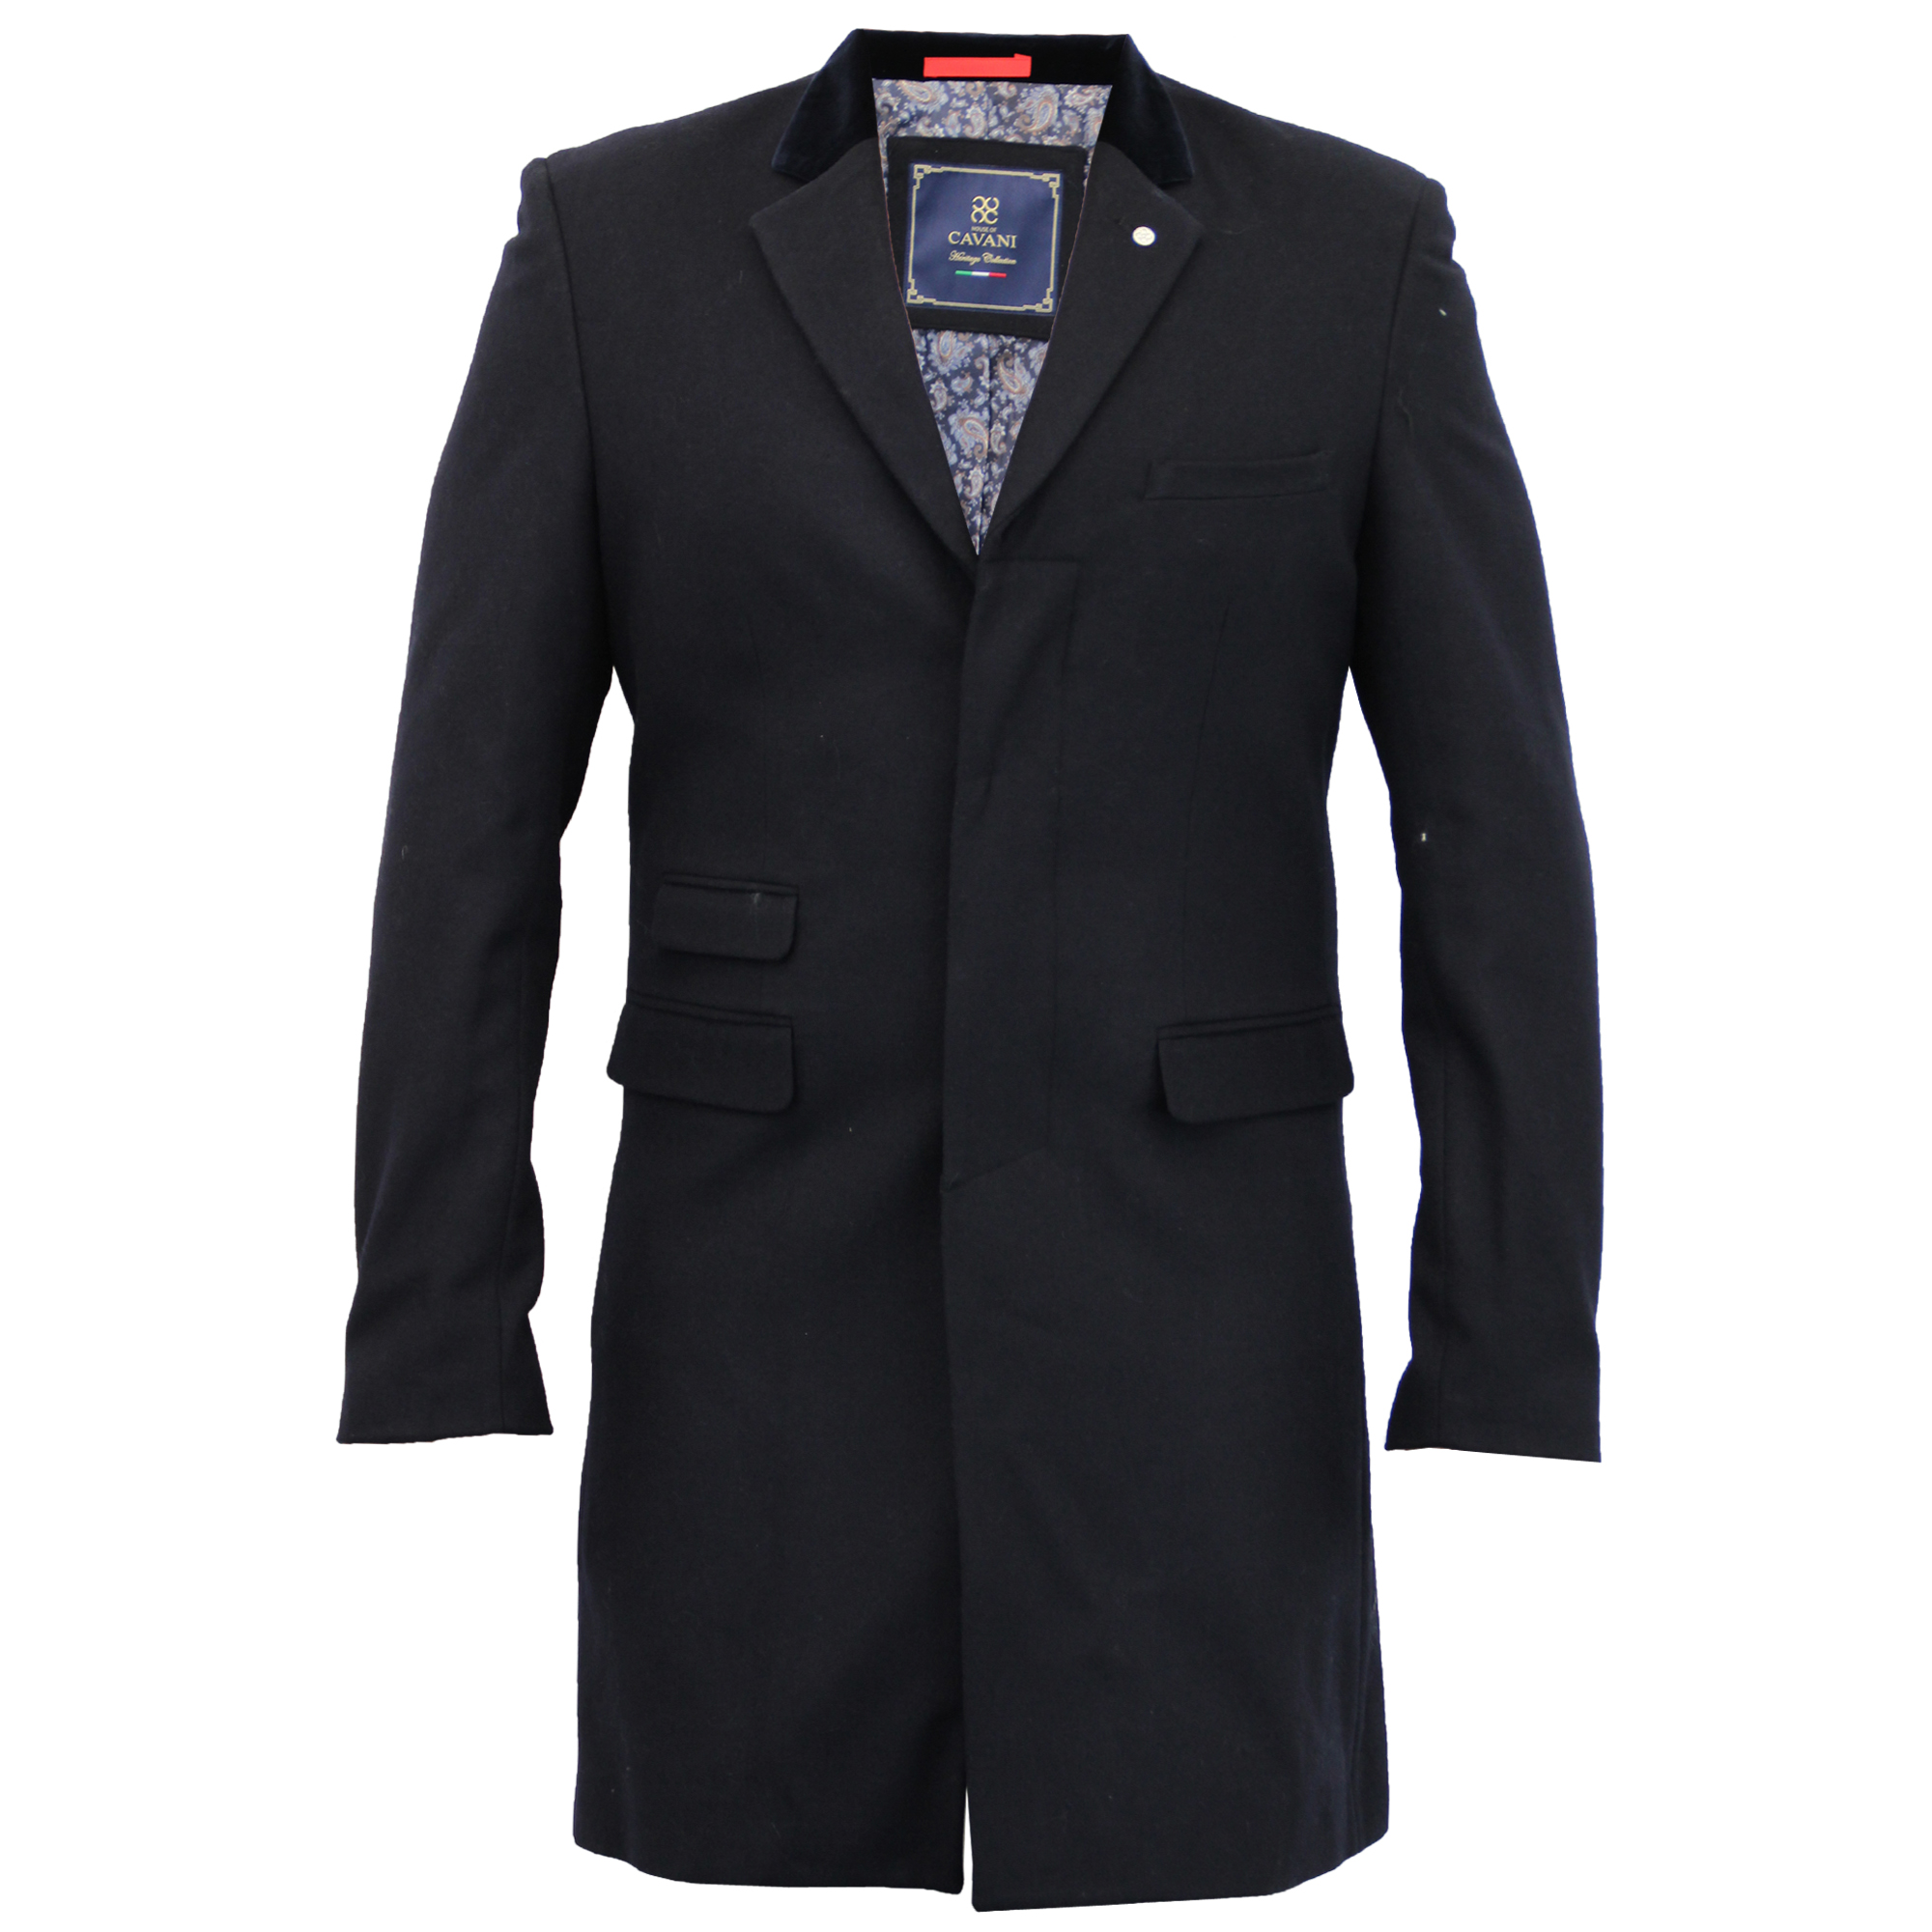 Shop for men's slim fit blazers & slim fit sports coats. See the latest styles, brands & colors of slim fit blazers from Men's Wearhouse. this fine wool sport coat flatters with a trim slim fit silhouette% hereyfiletk.gq hereyfiletk.gq hereyfiletk.gq hereyfiletk.gq hereyfiletk.gq hereyfiletk.gq hereyfiletk.gq Clean Only Slim Fit.